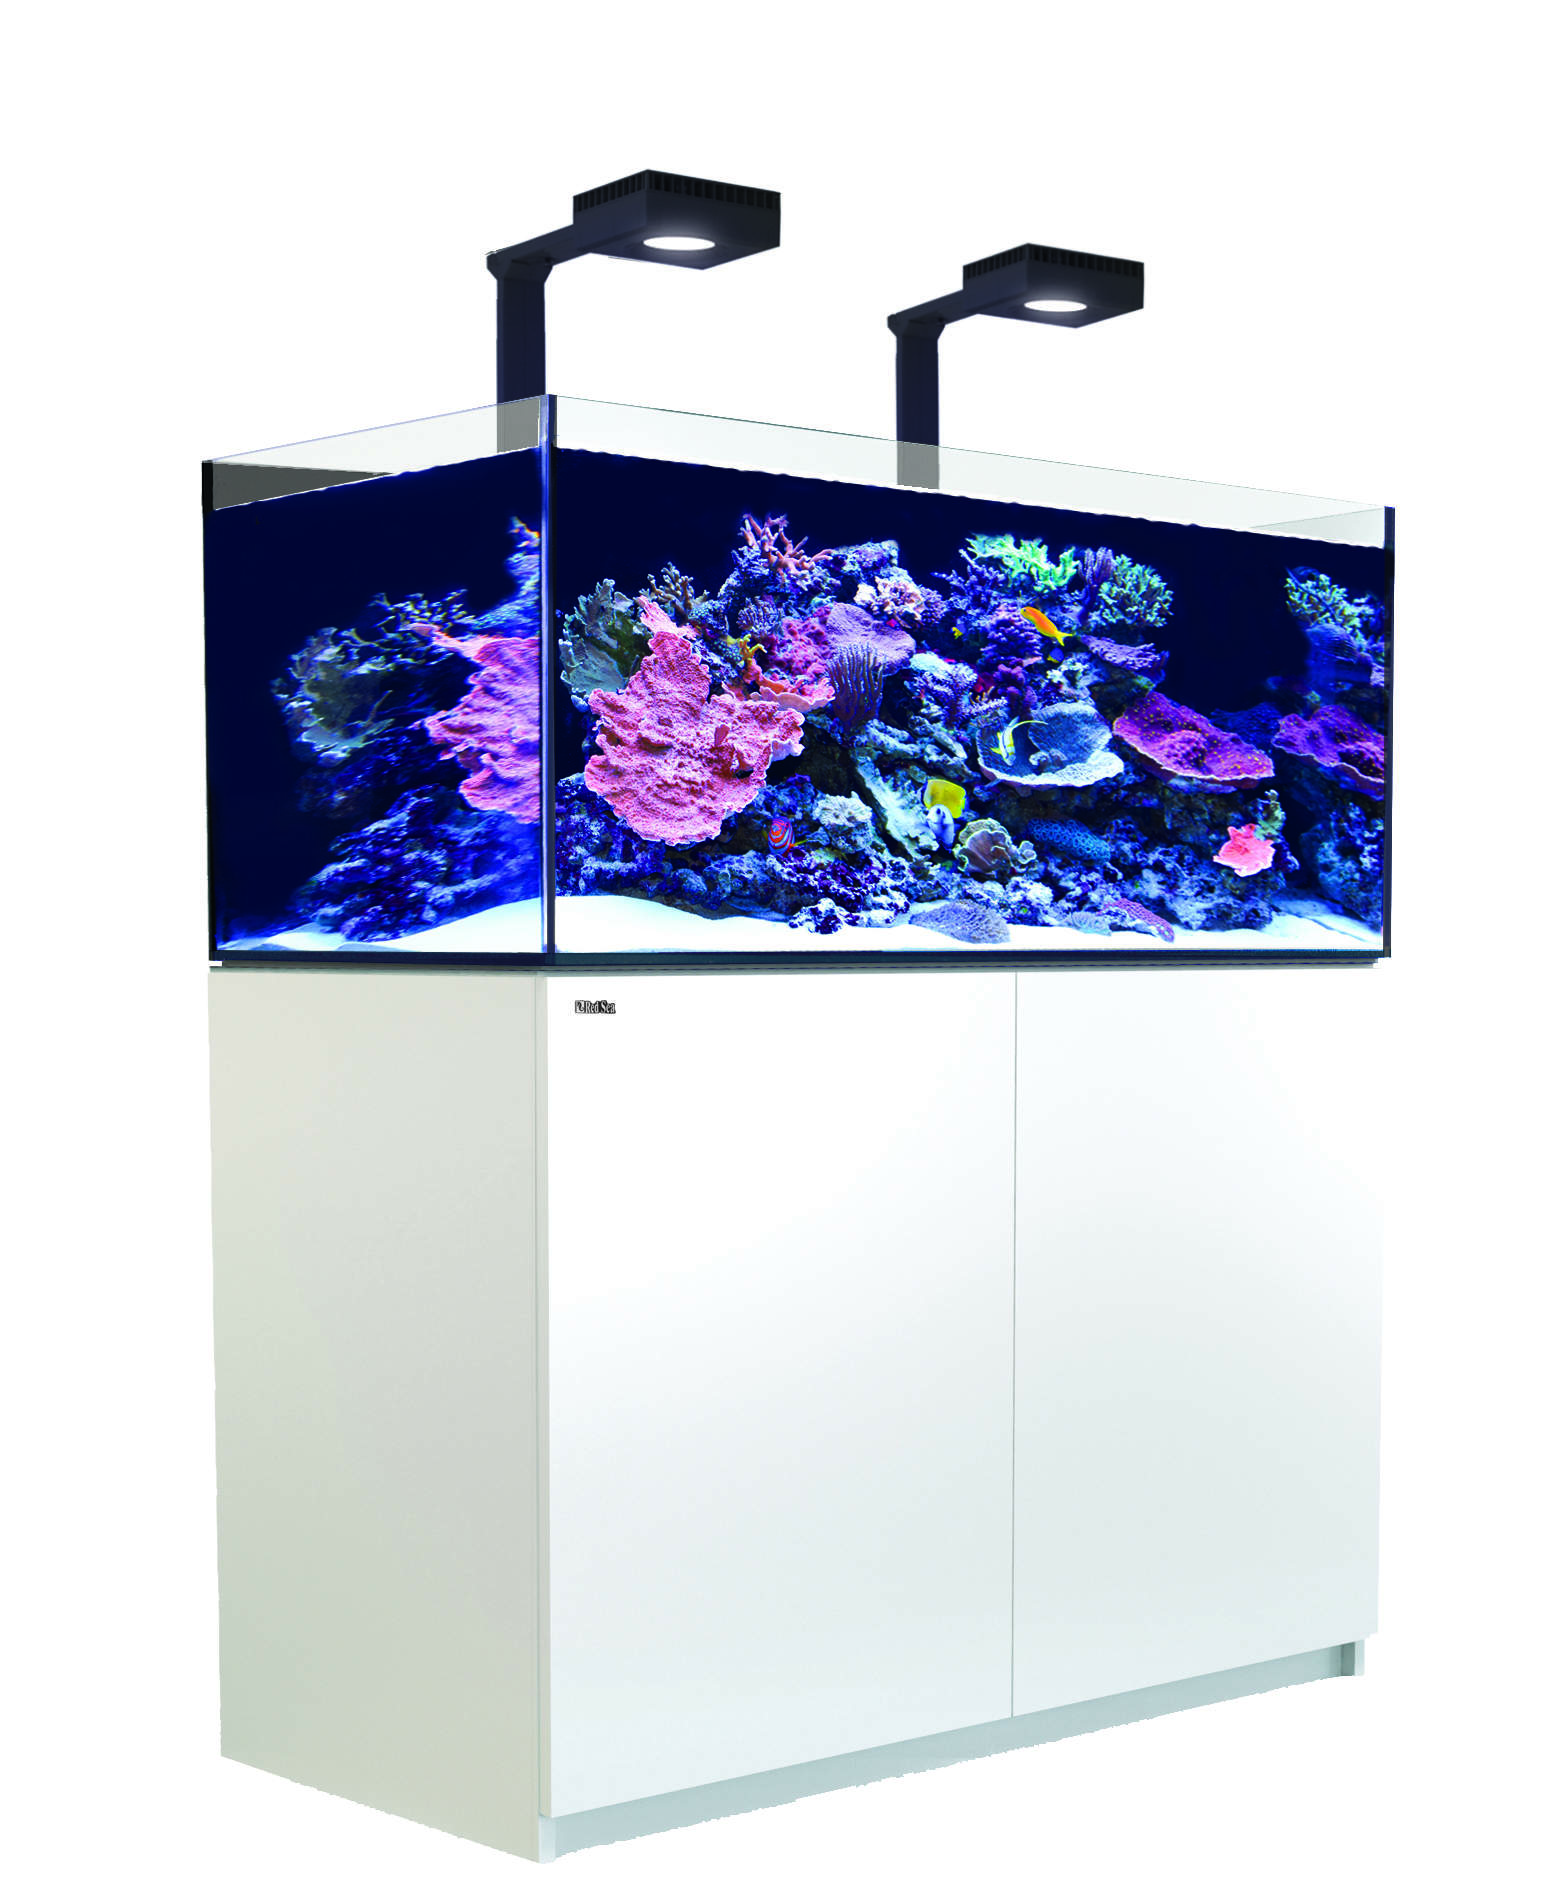 REEFER  XL 425 V3 Deluxe System  - White   (incl. 2 X ReefLED  90 & Mounting Arms)